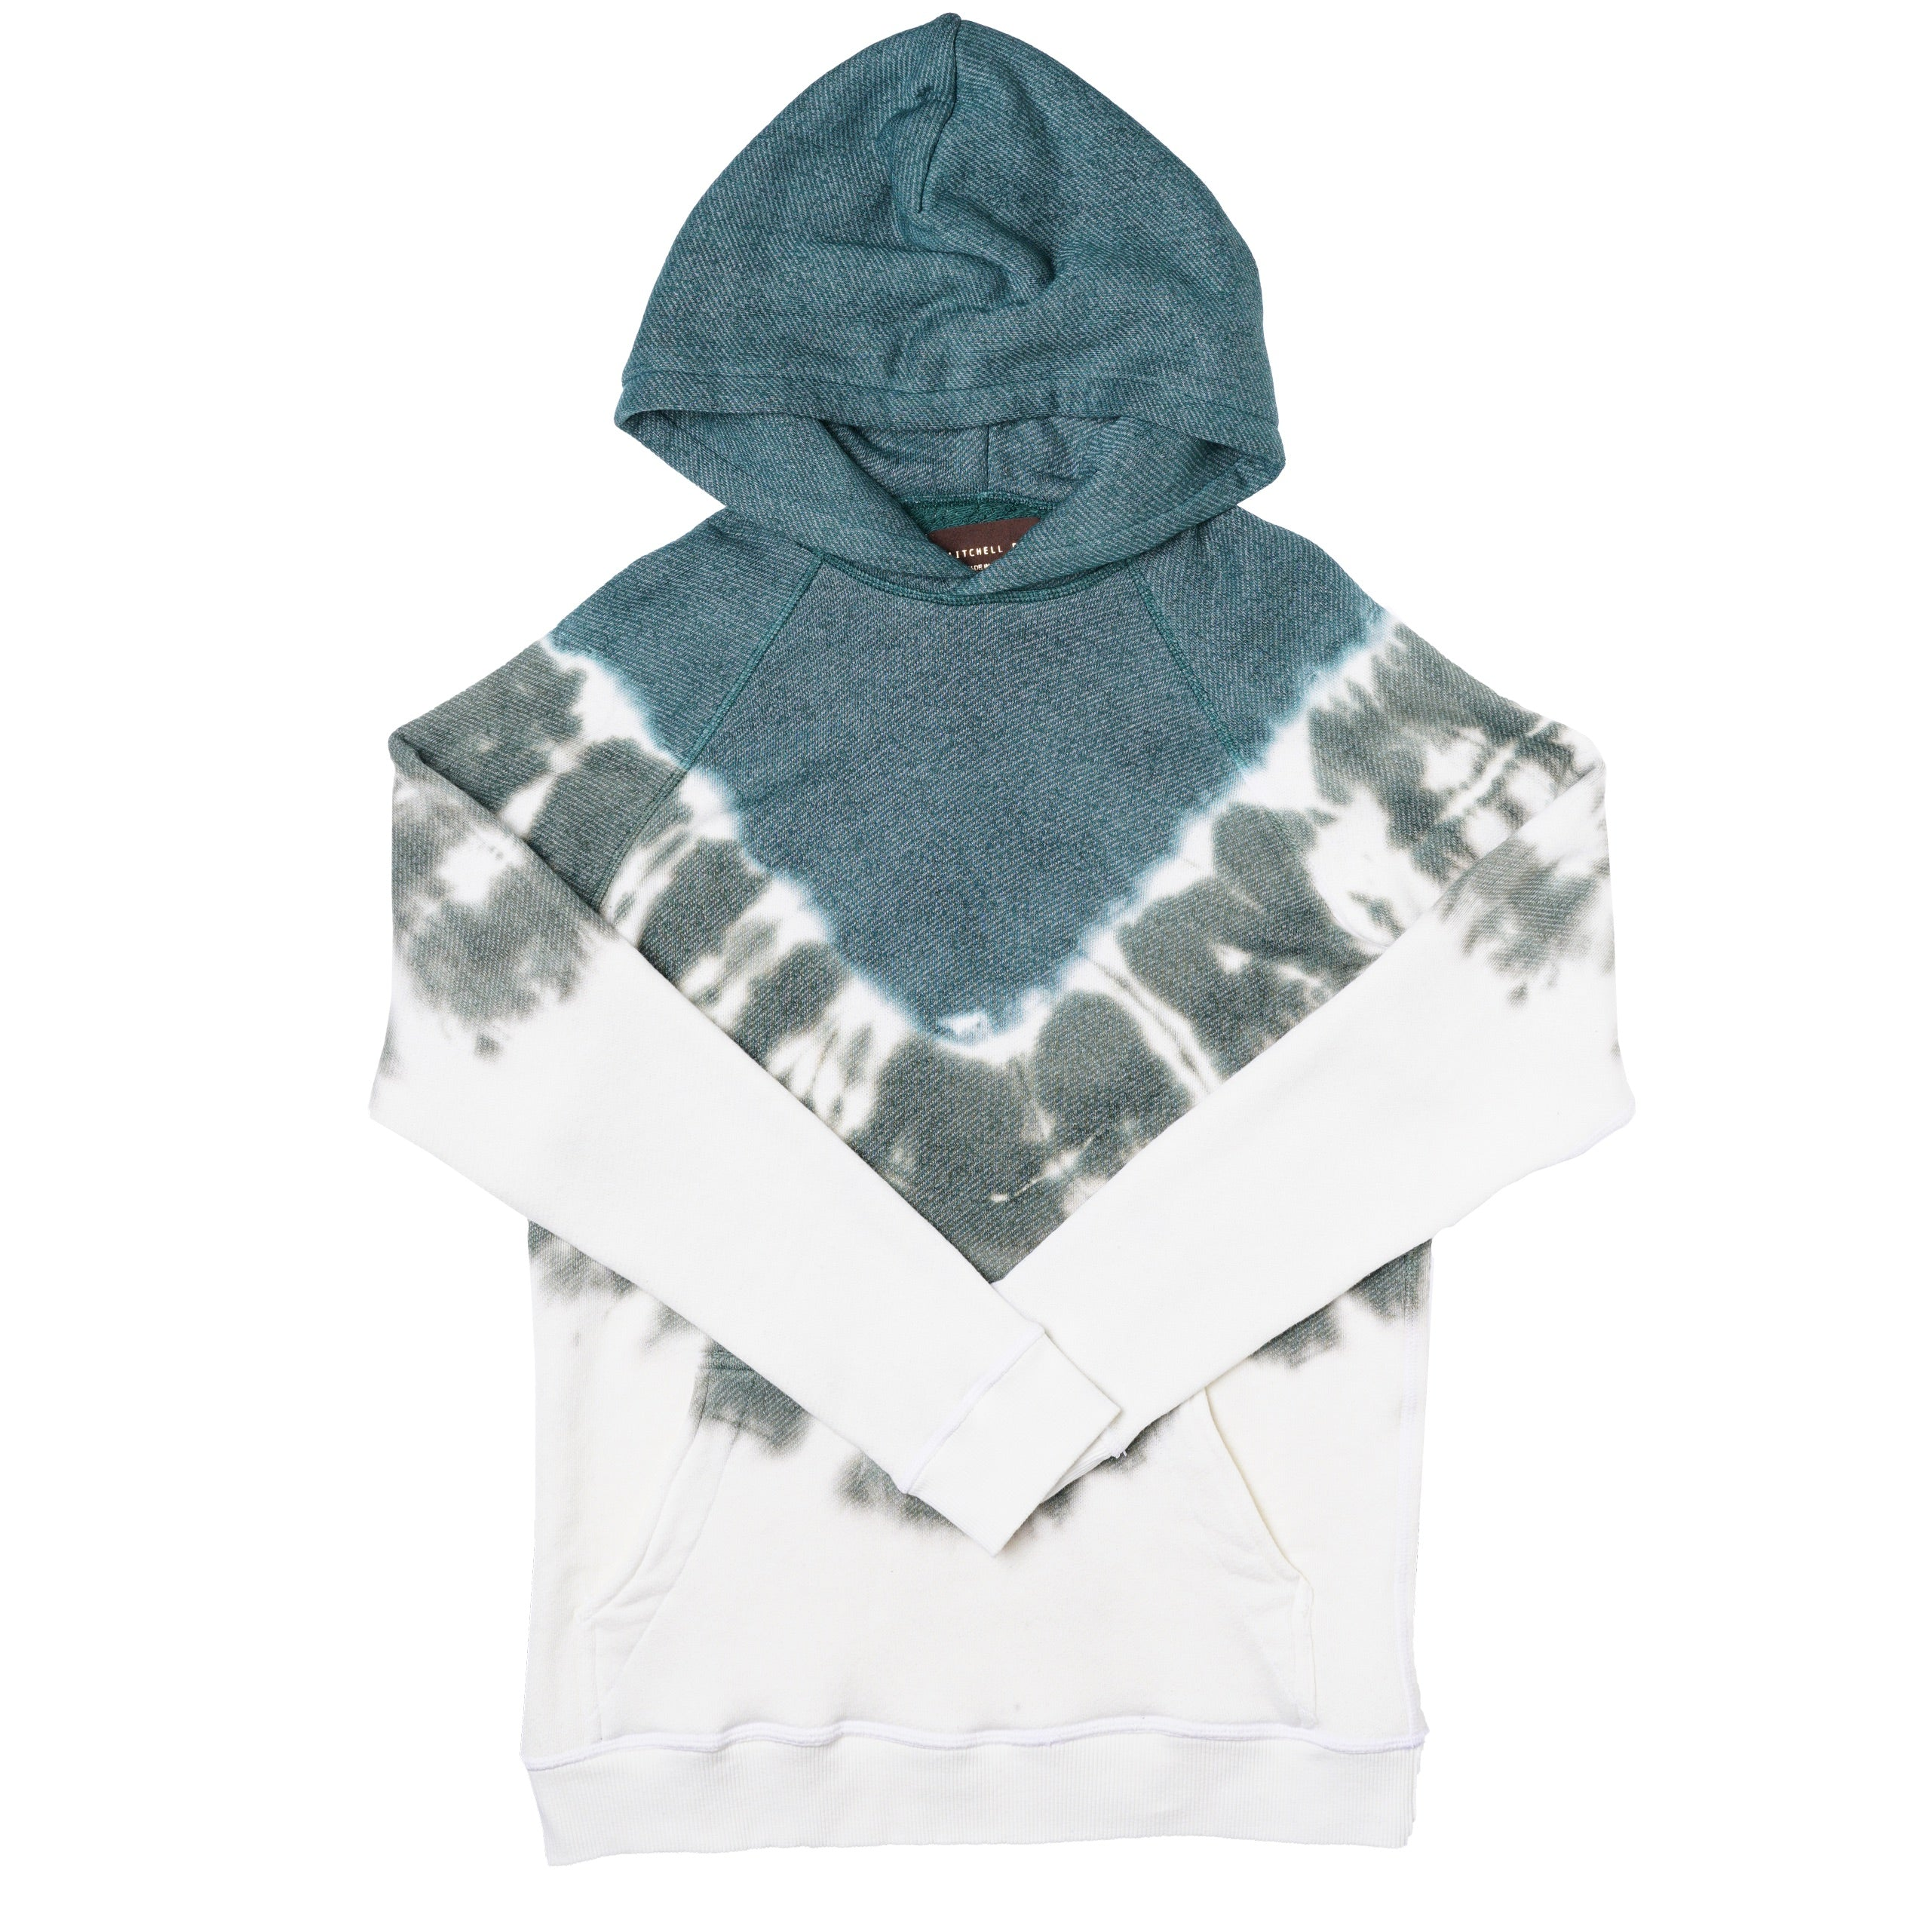 Pullover Hoodie in Pine Dye - Mitchell Evan